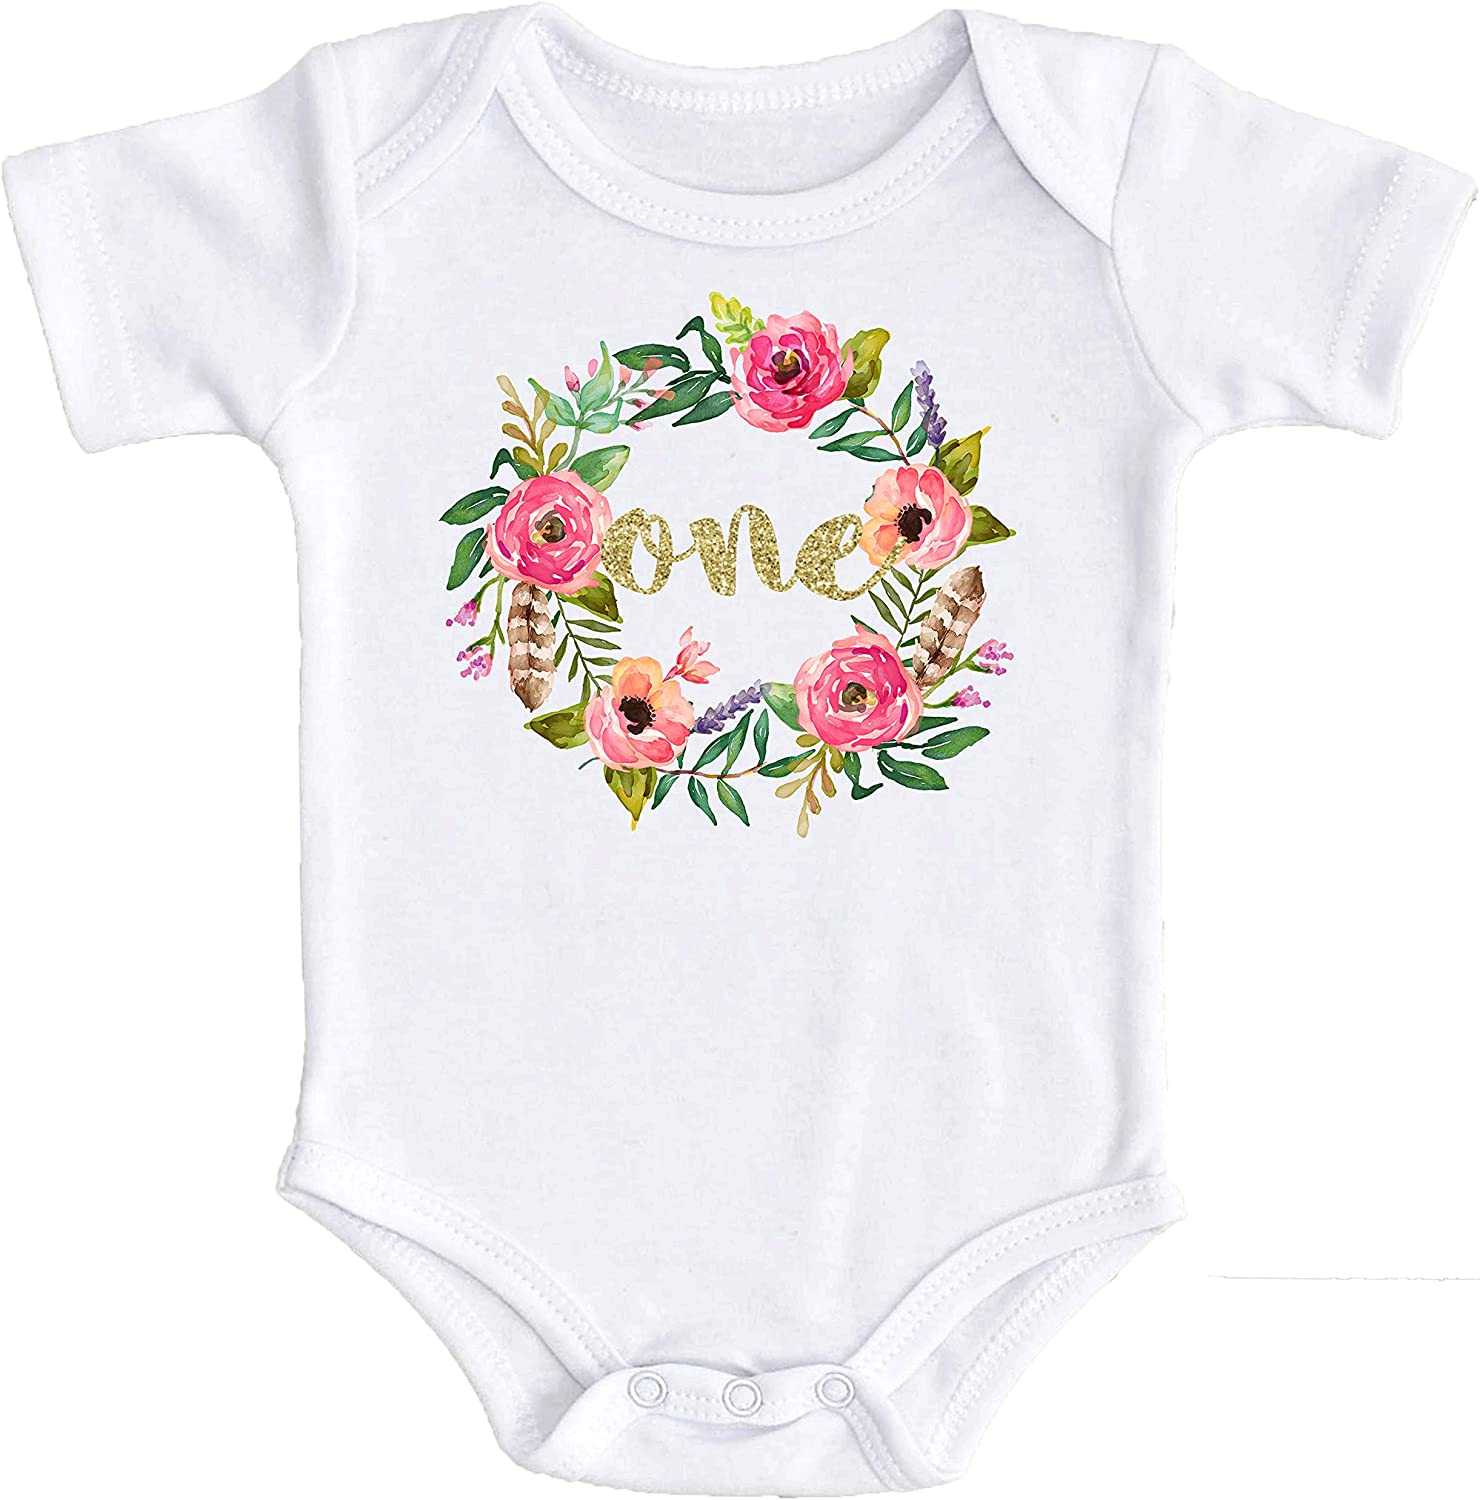 Girls 1st Birthday Bodysuit Watercolor Floral Boho 1st Birthday Girl Outfit